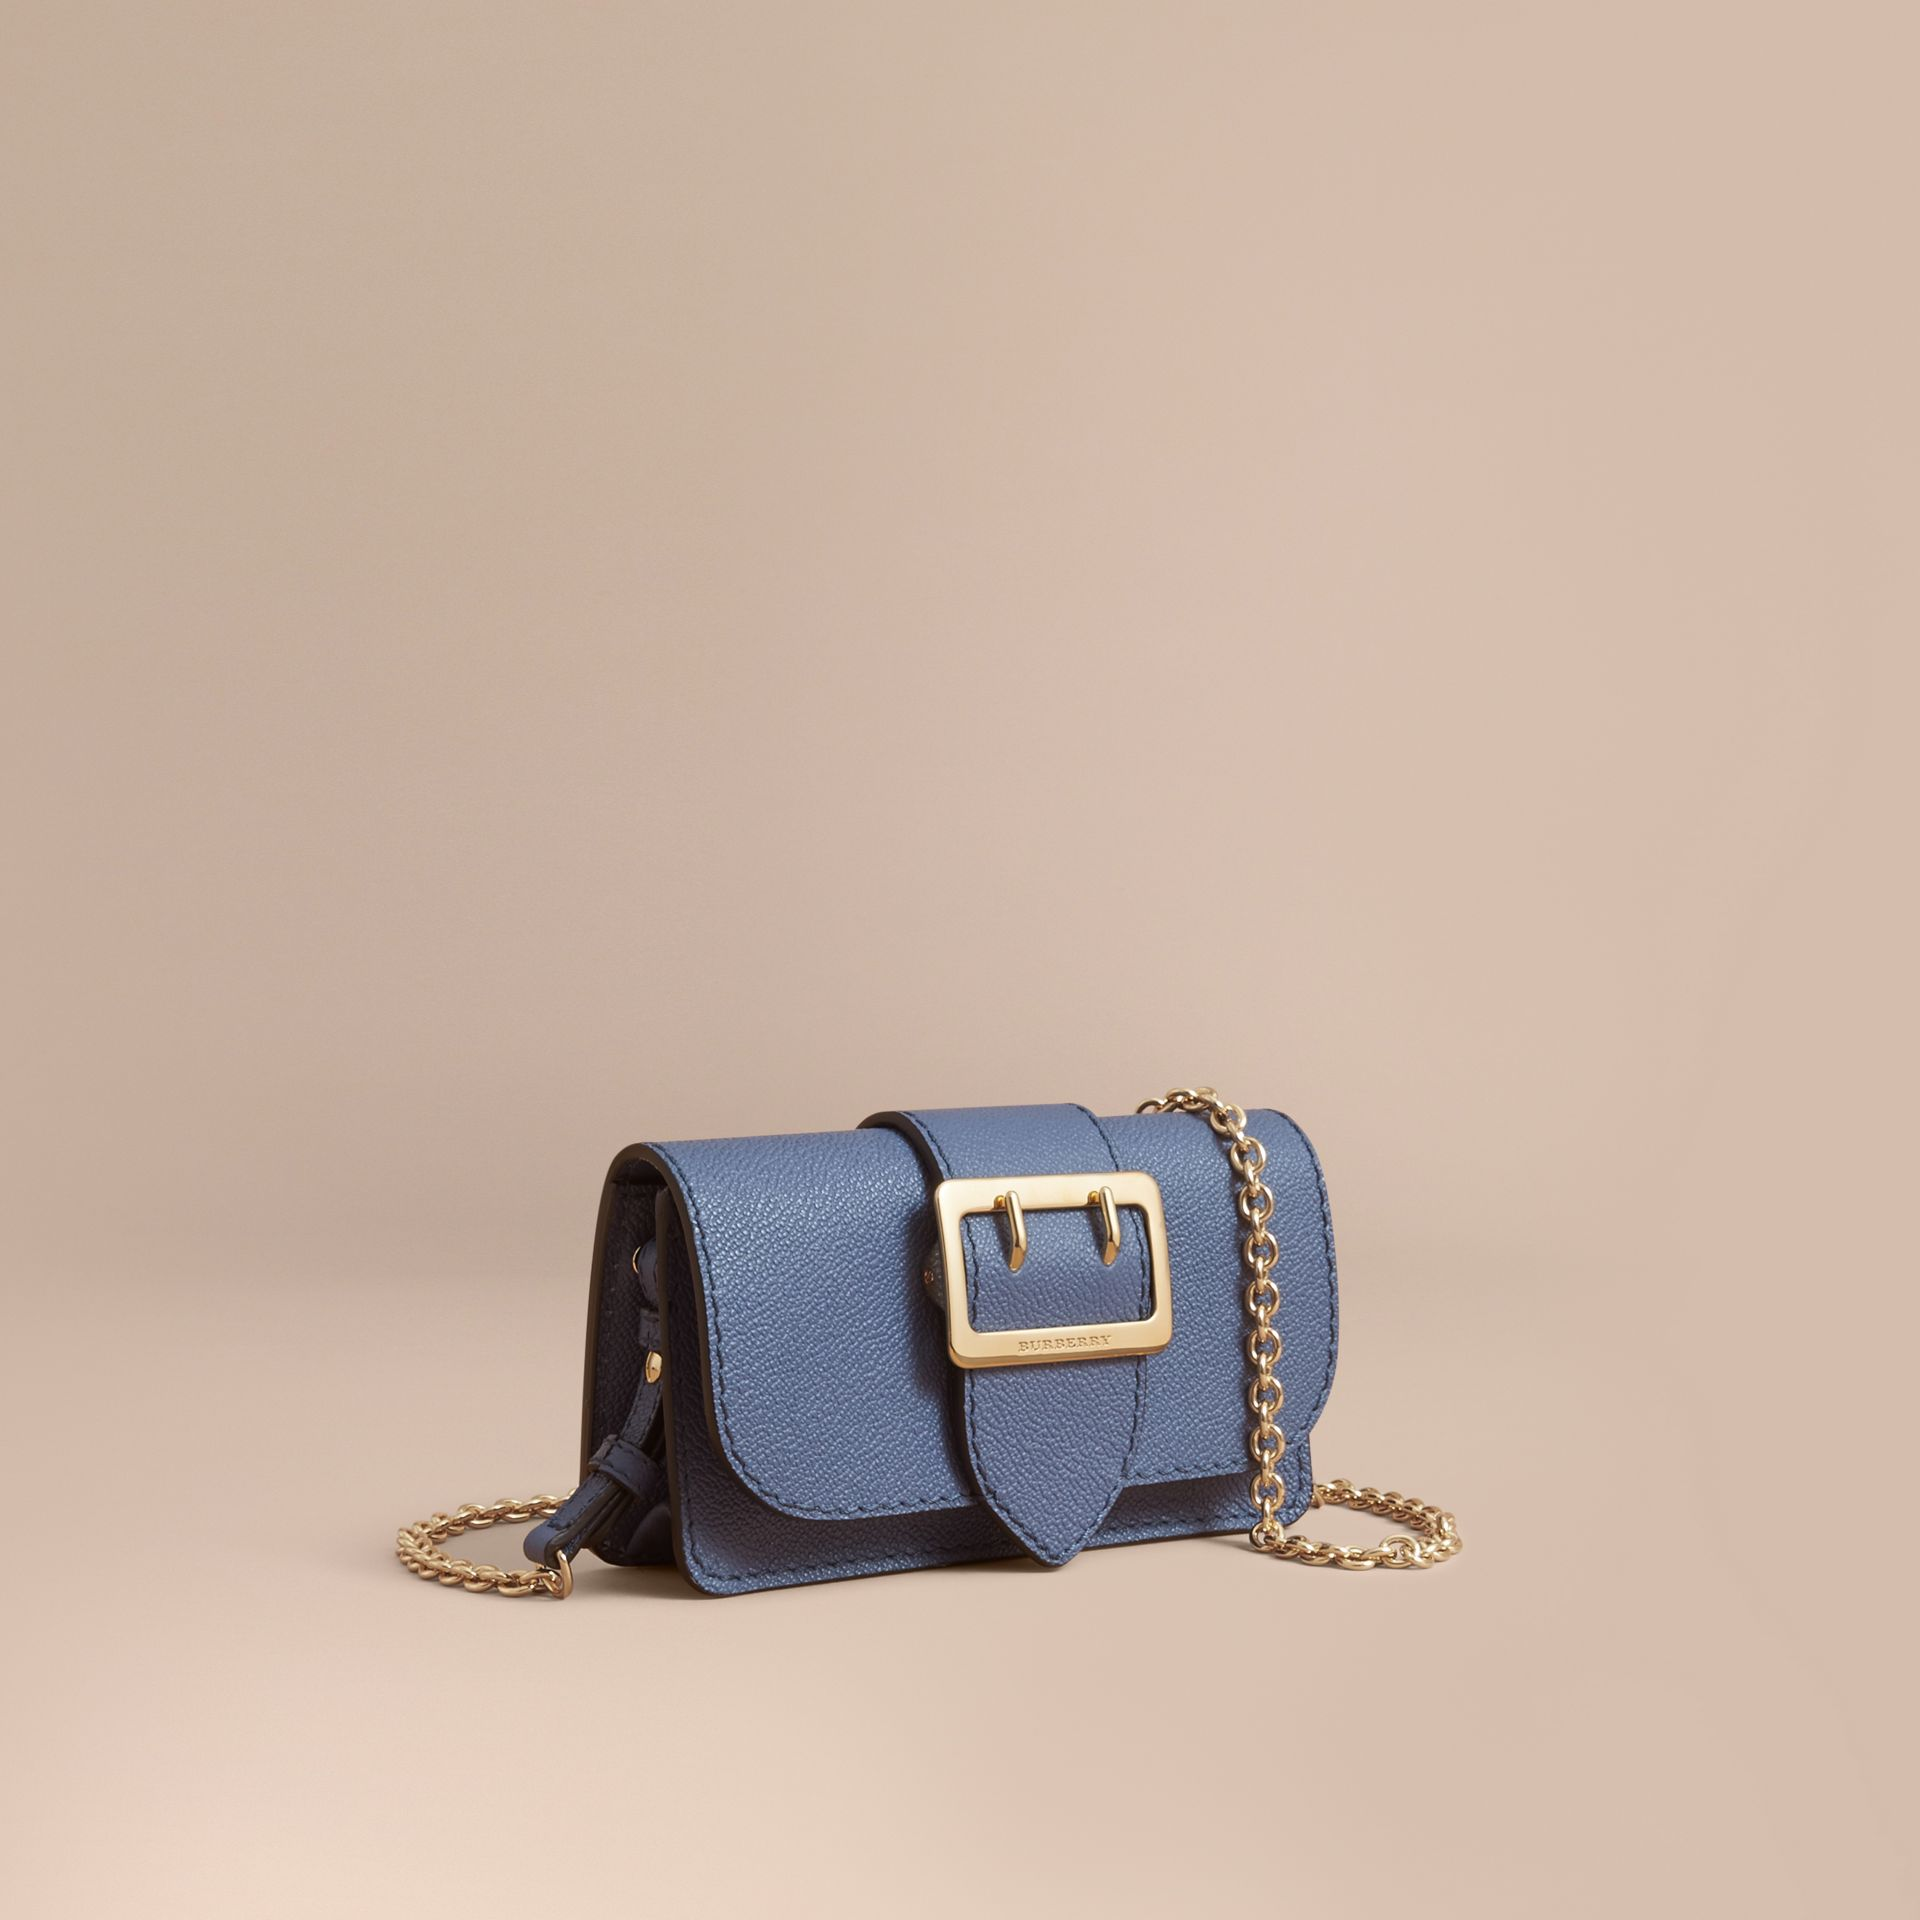 The Mini Buckle Bag in Grainy Leather in Steel Blue - Women | Burberry - gallery image 1